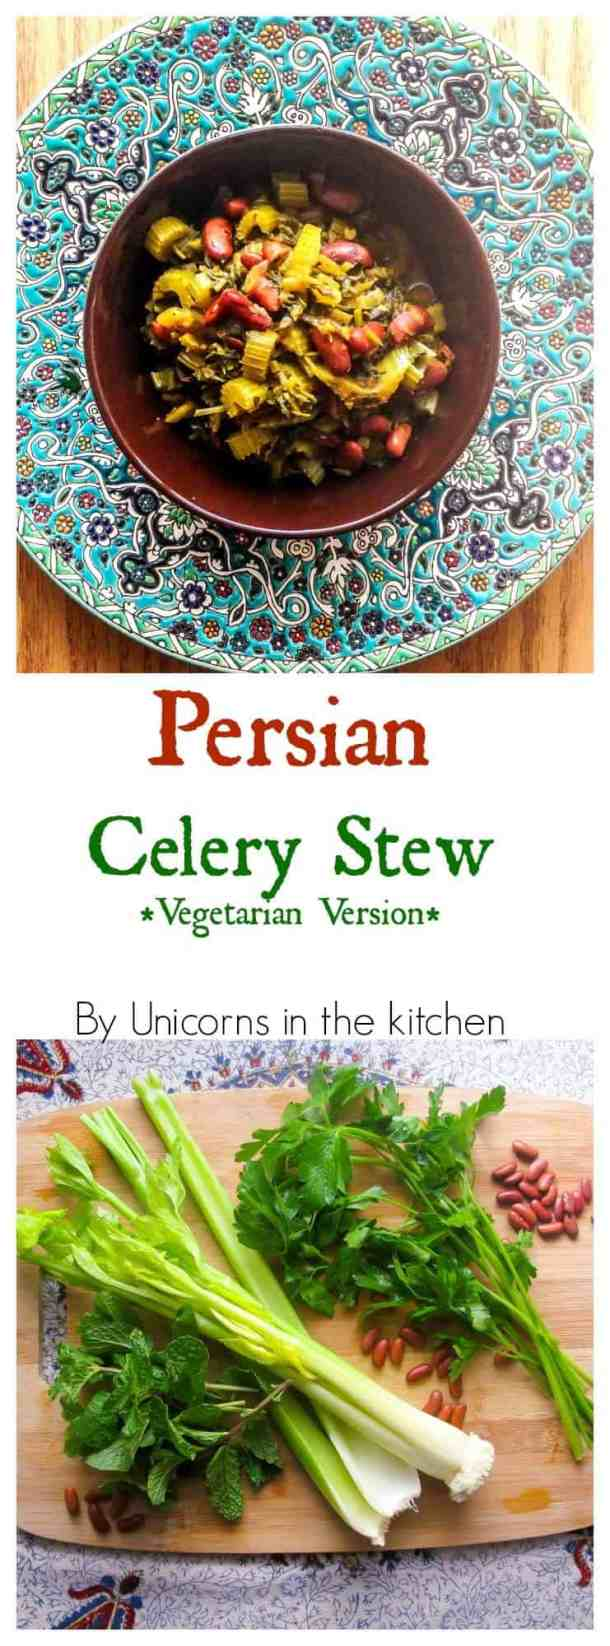 Persian celery stew is a wonderful dish you have to try if youlikeeasy, new and delicious food! it bursts with flavor and is perfect with persian style rice! #persianrecipes #persianstew #stewrecipes #vegetarianstew